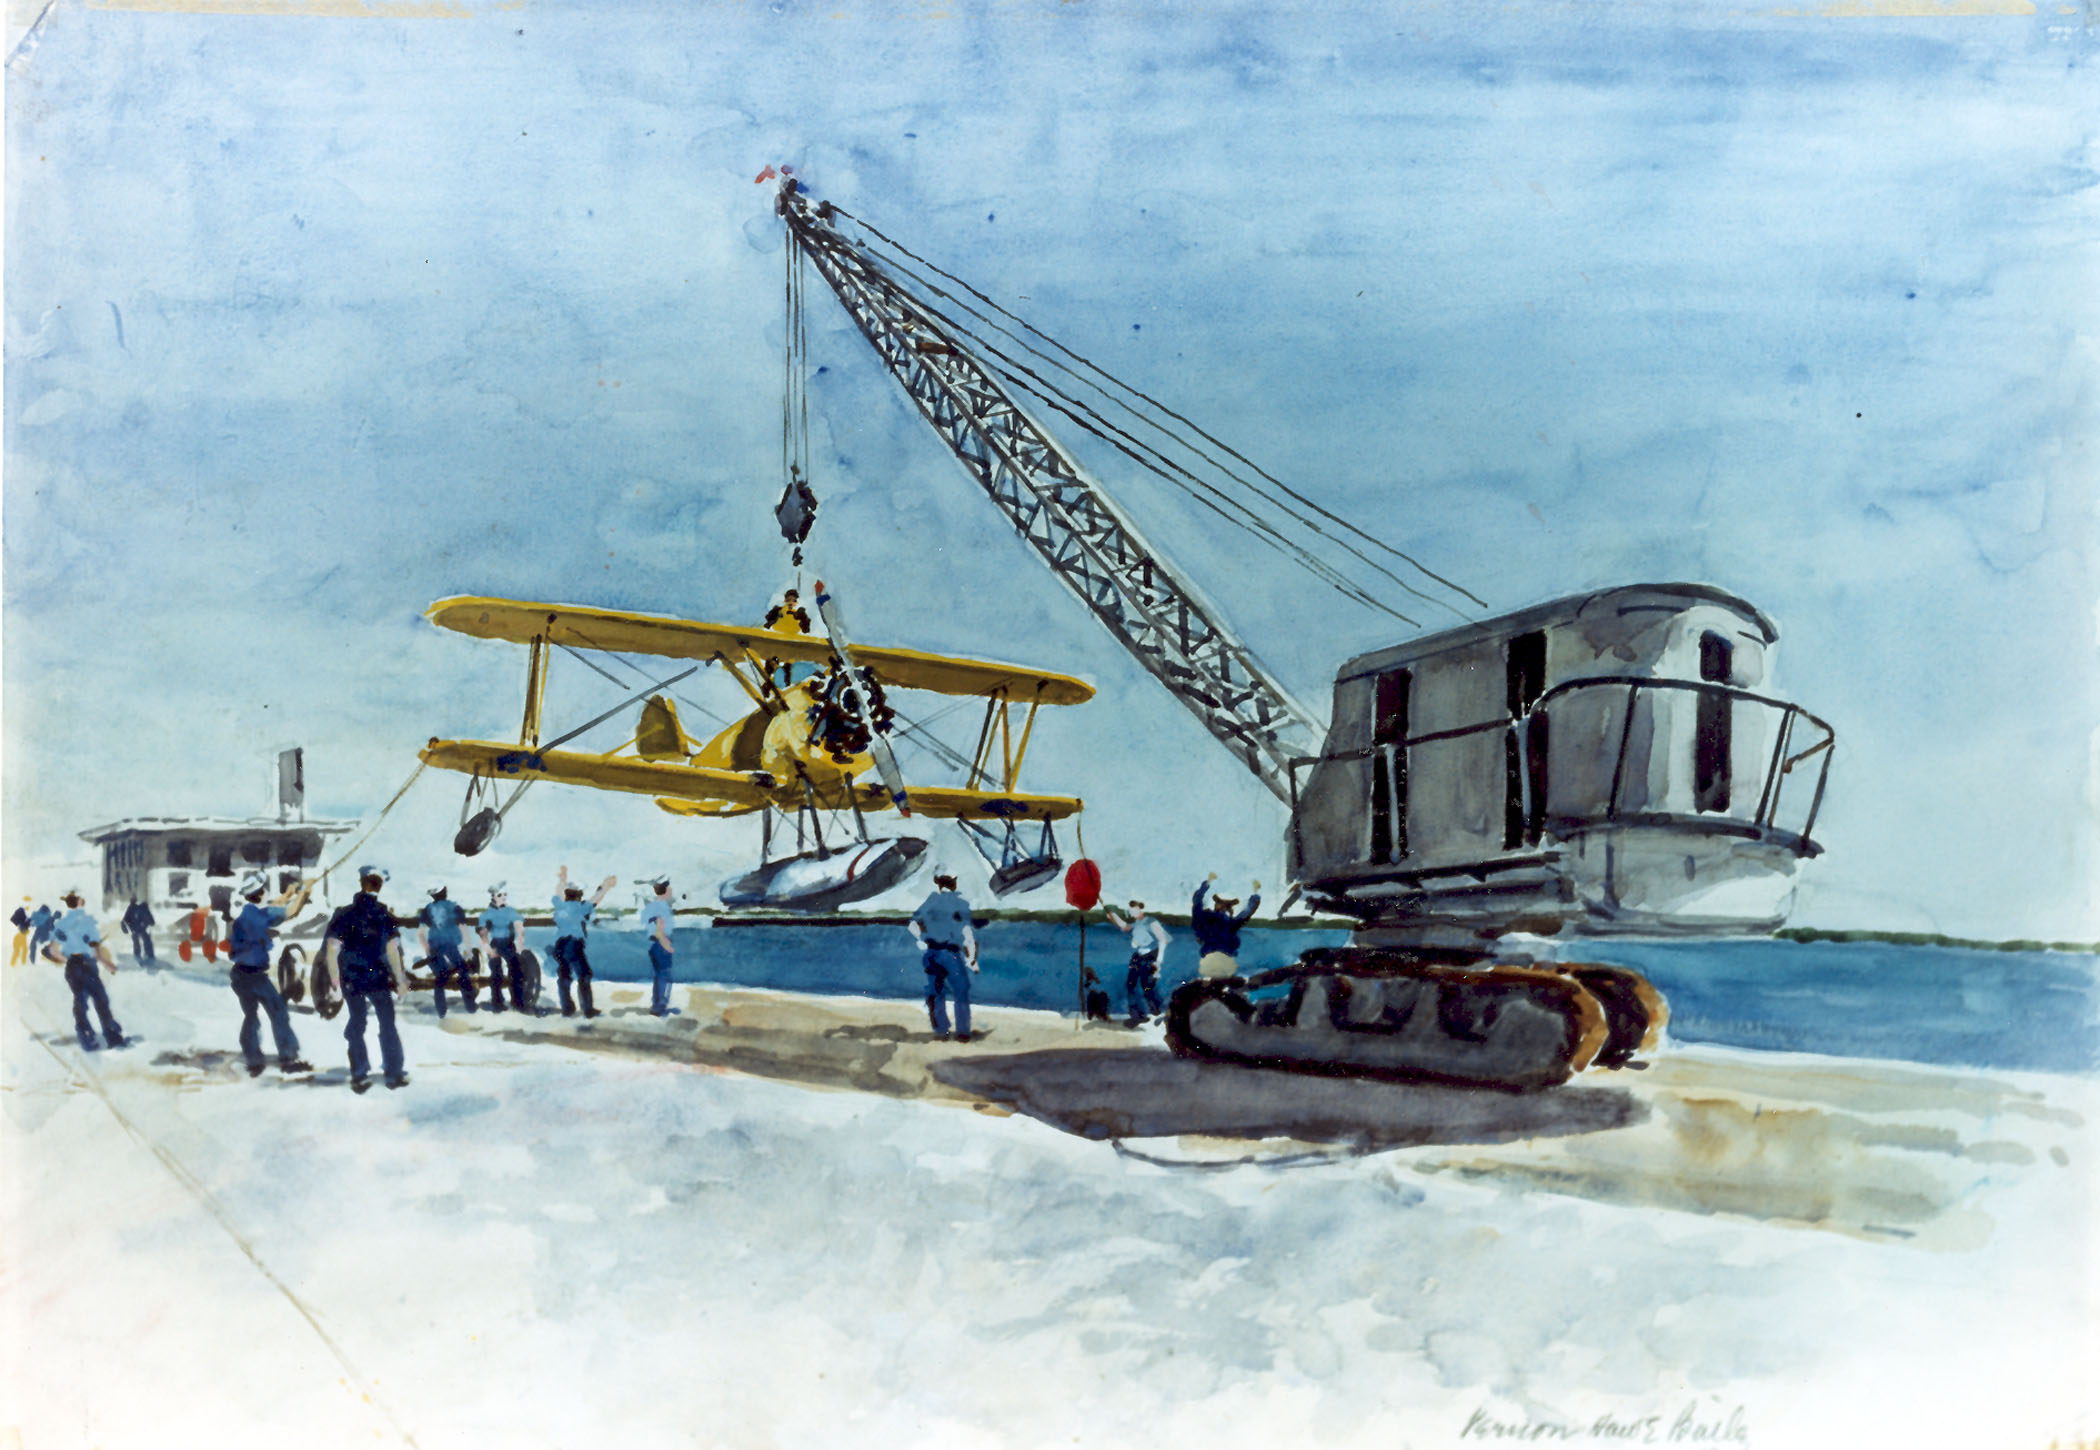 Crane hoisting a sea plane from the St. Johns River.